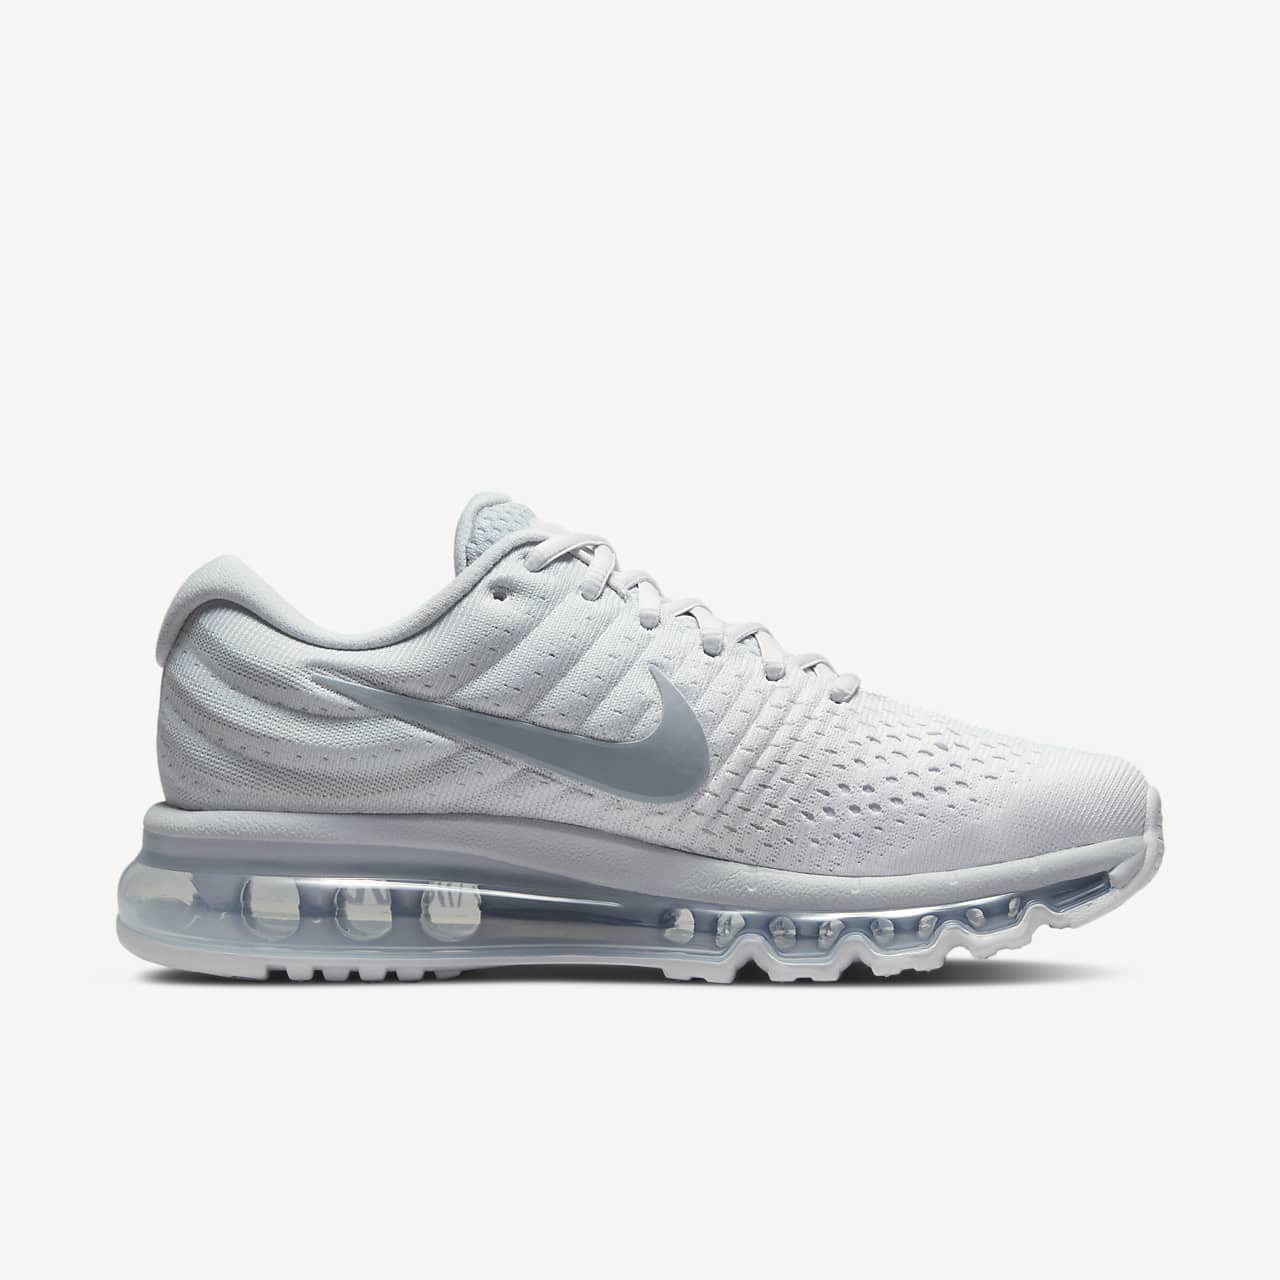 nike air max 2017 women 39 s running shoe gb. Black Bedroom Furniture Sets. Home Design Ideas